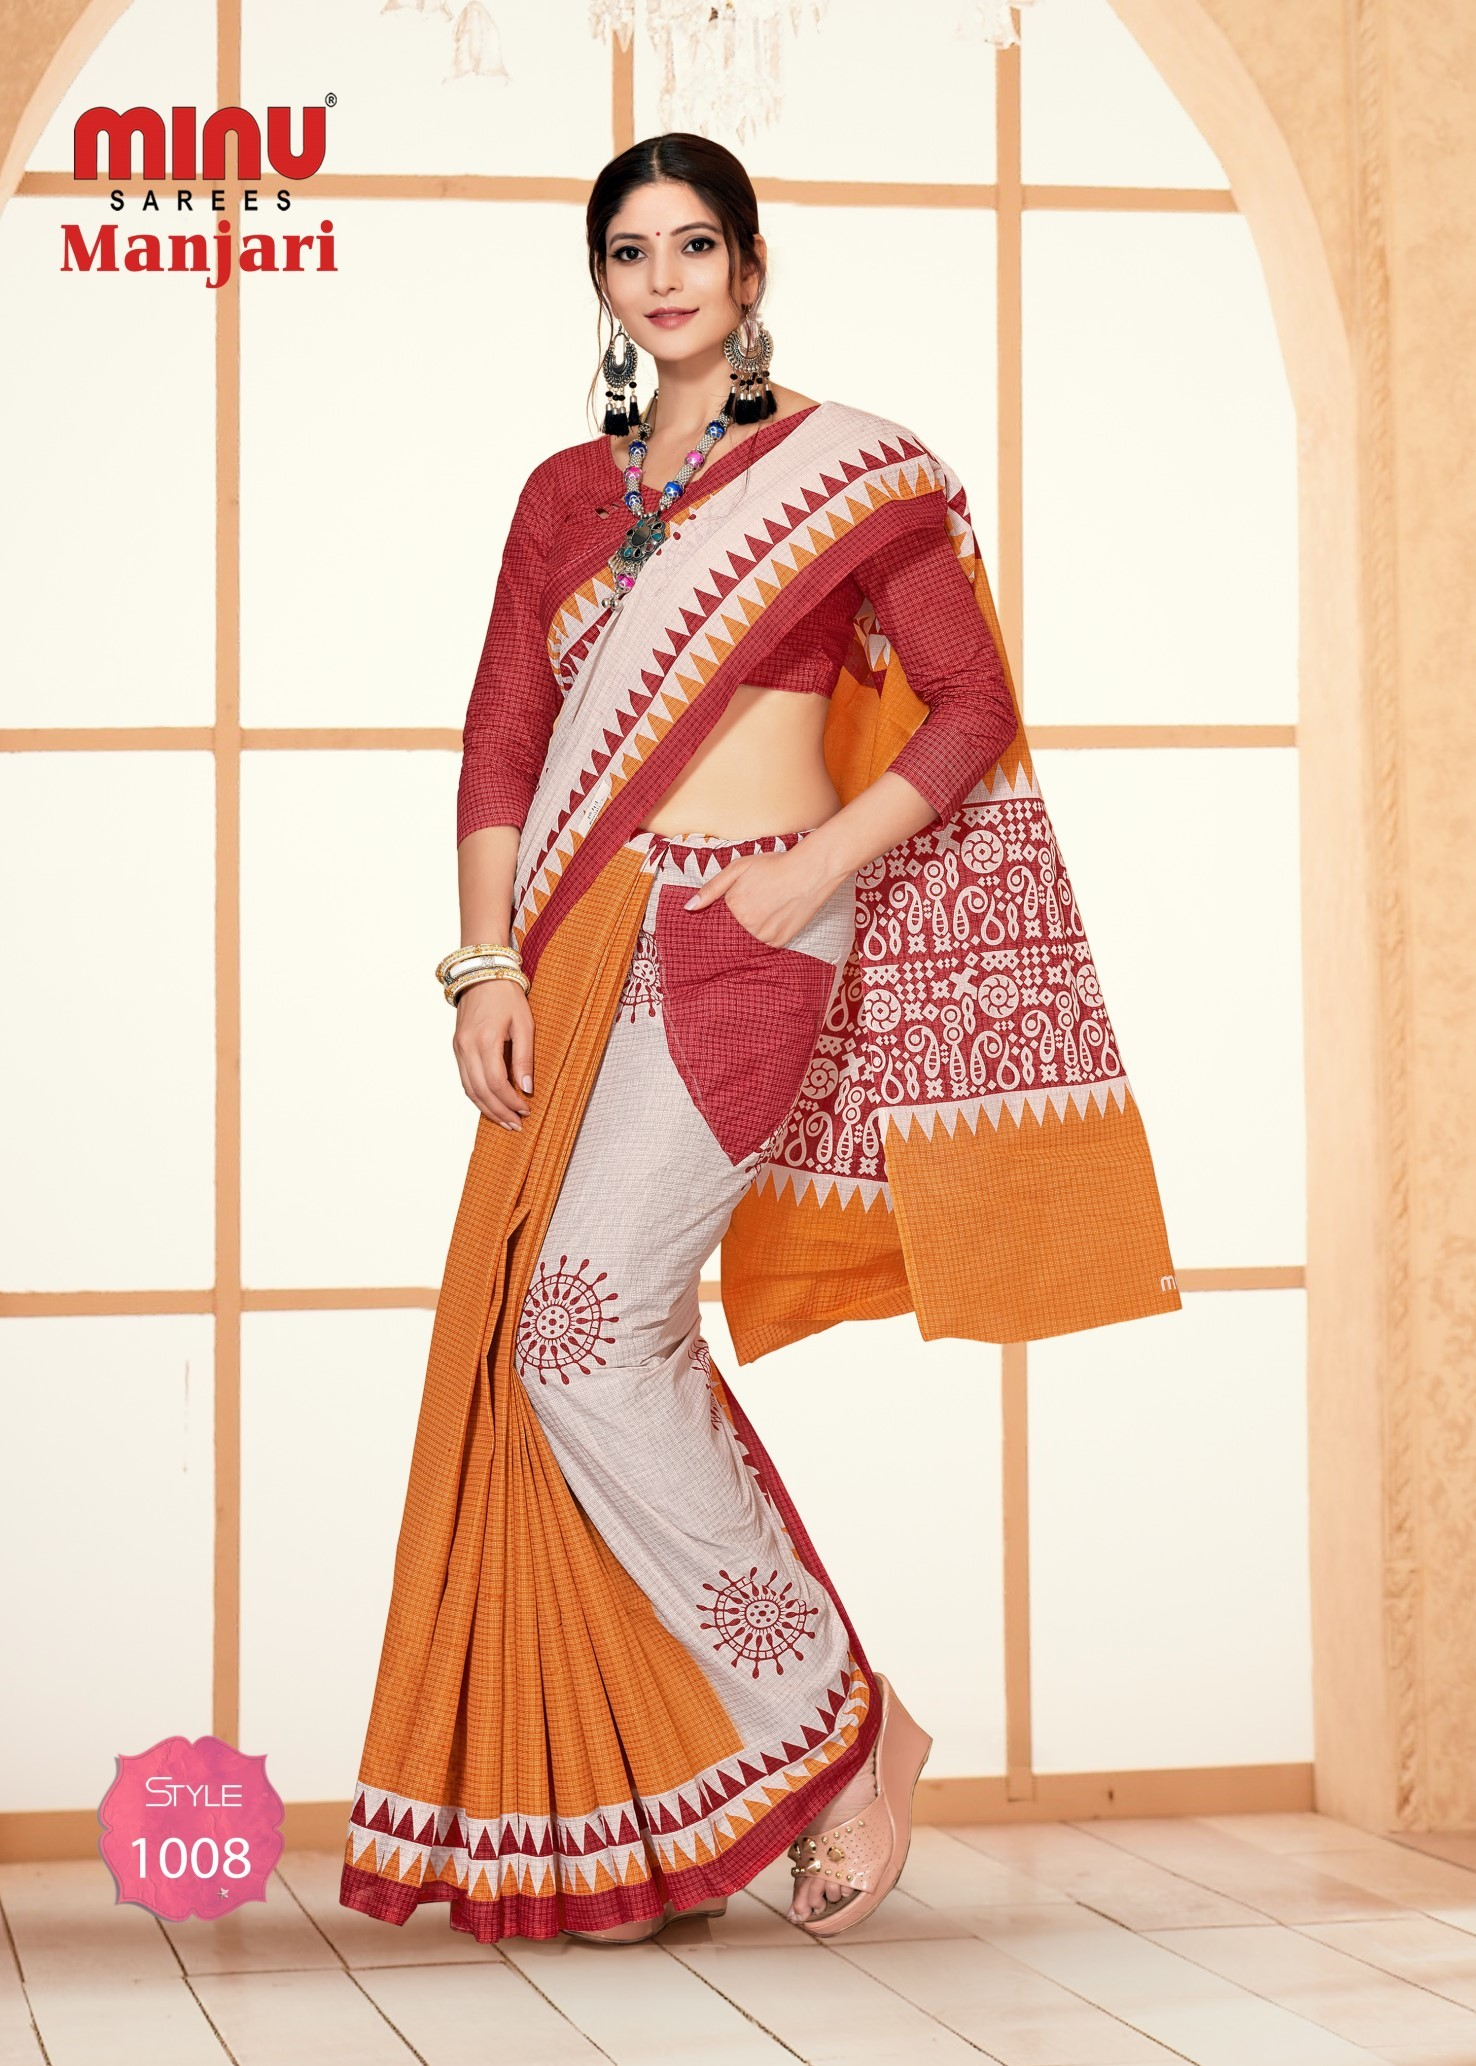 Minu Manjari Malai Cotton Pocket Saree